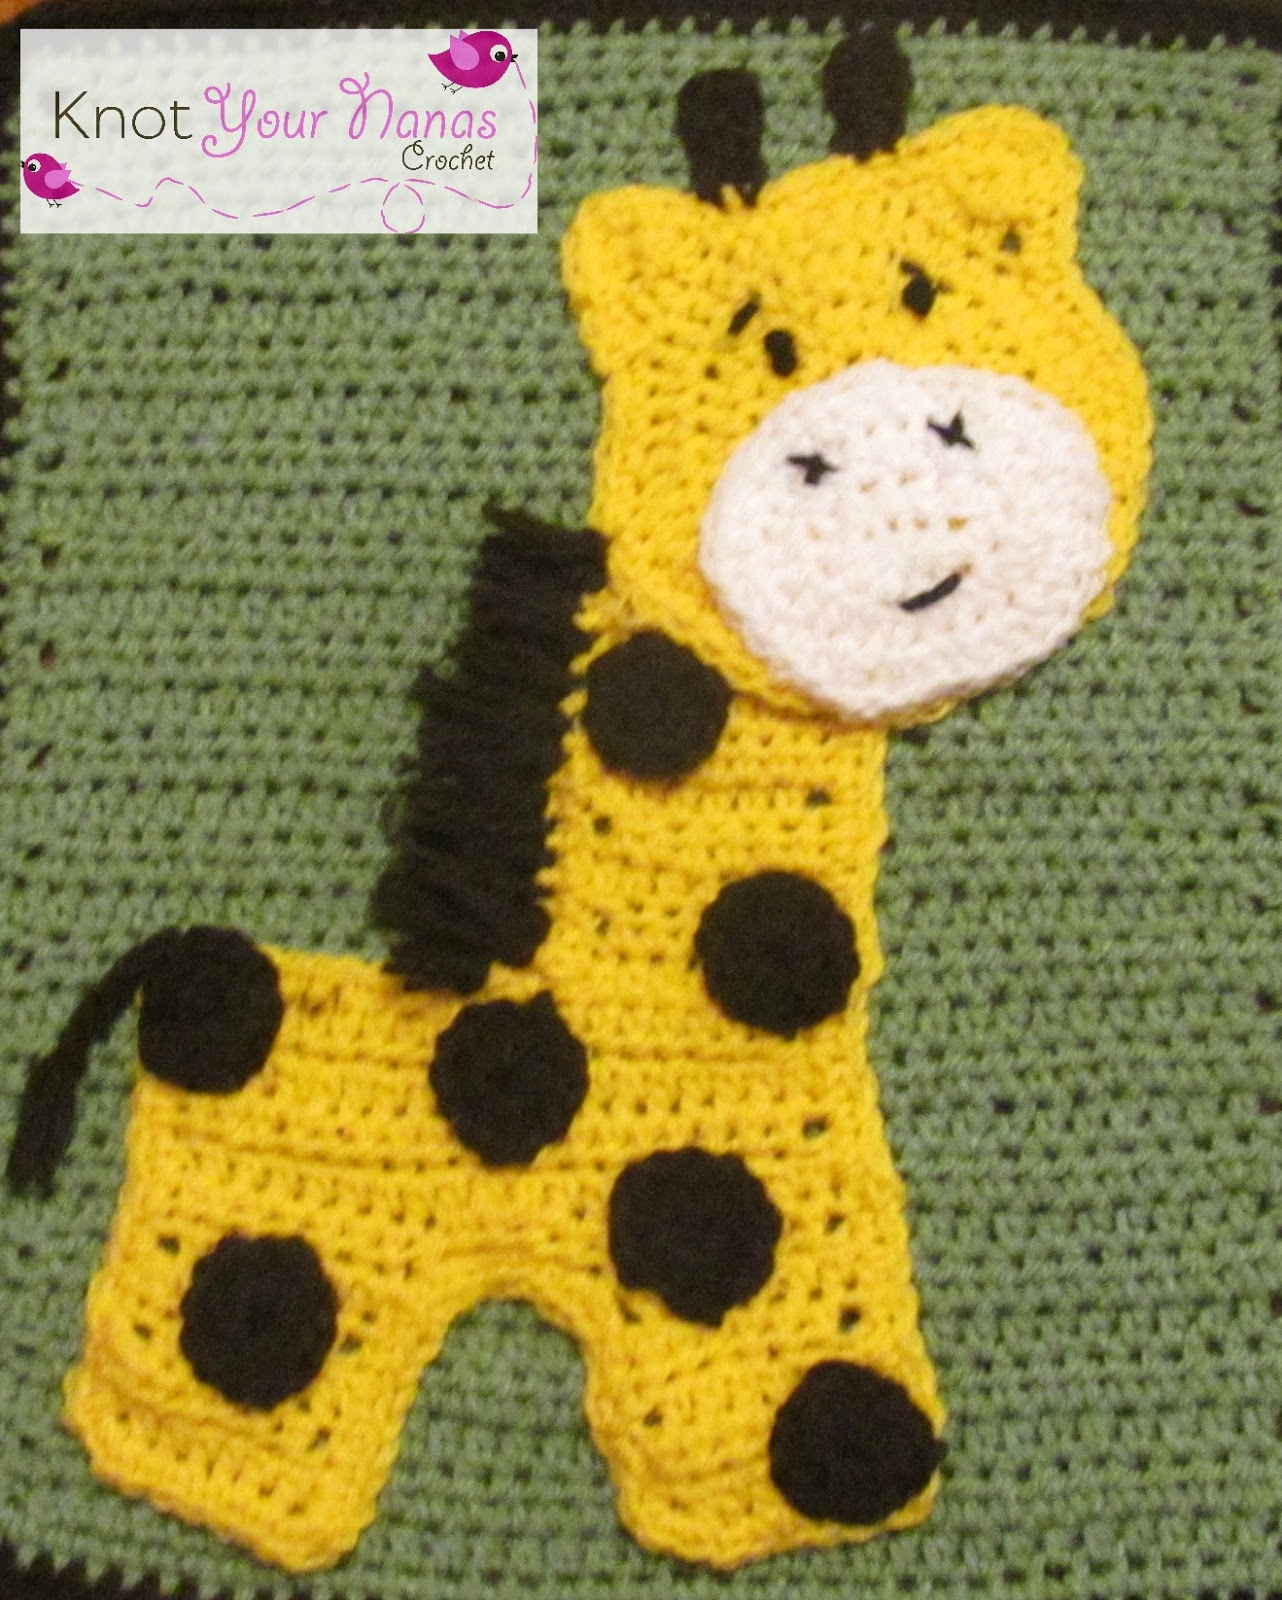 Crochet Safari Animals Free Patterns : Knot Your Nanas Crochet: Zoo Blanket